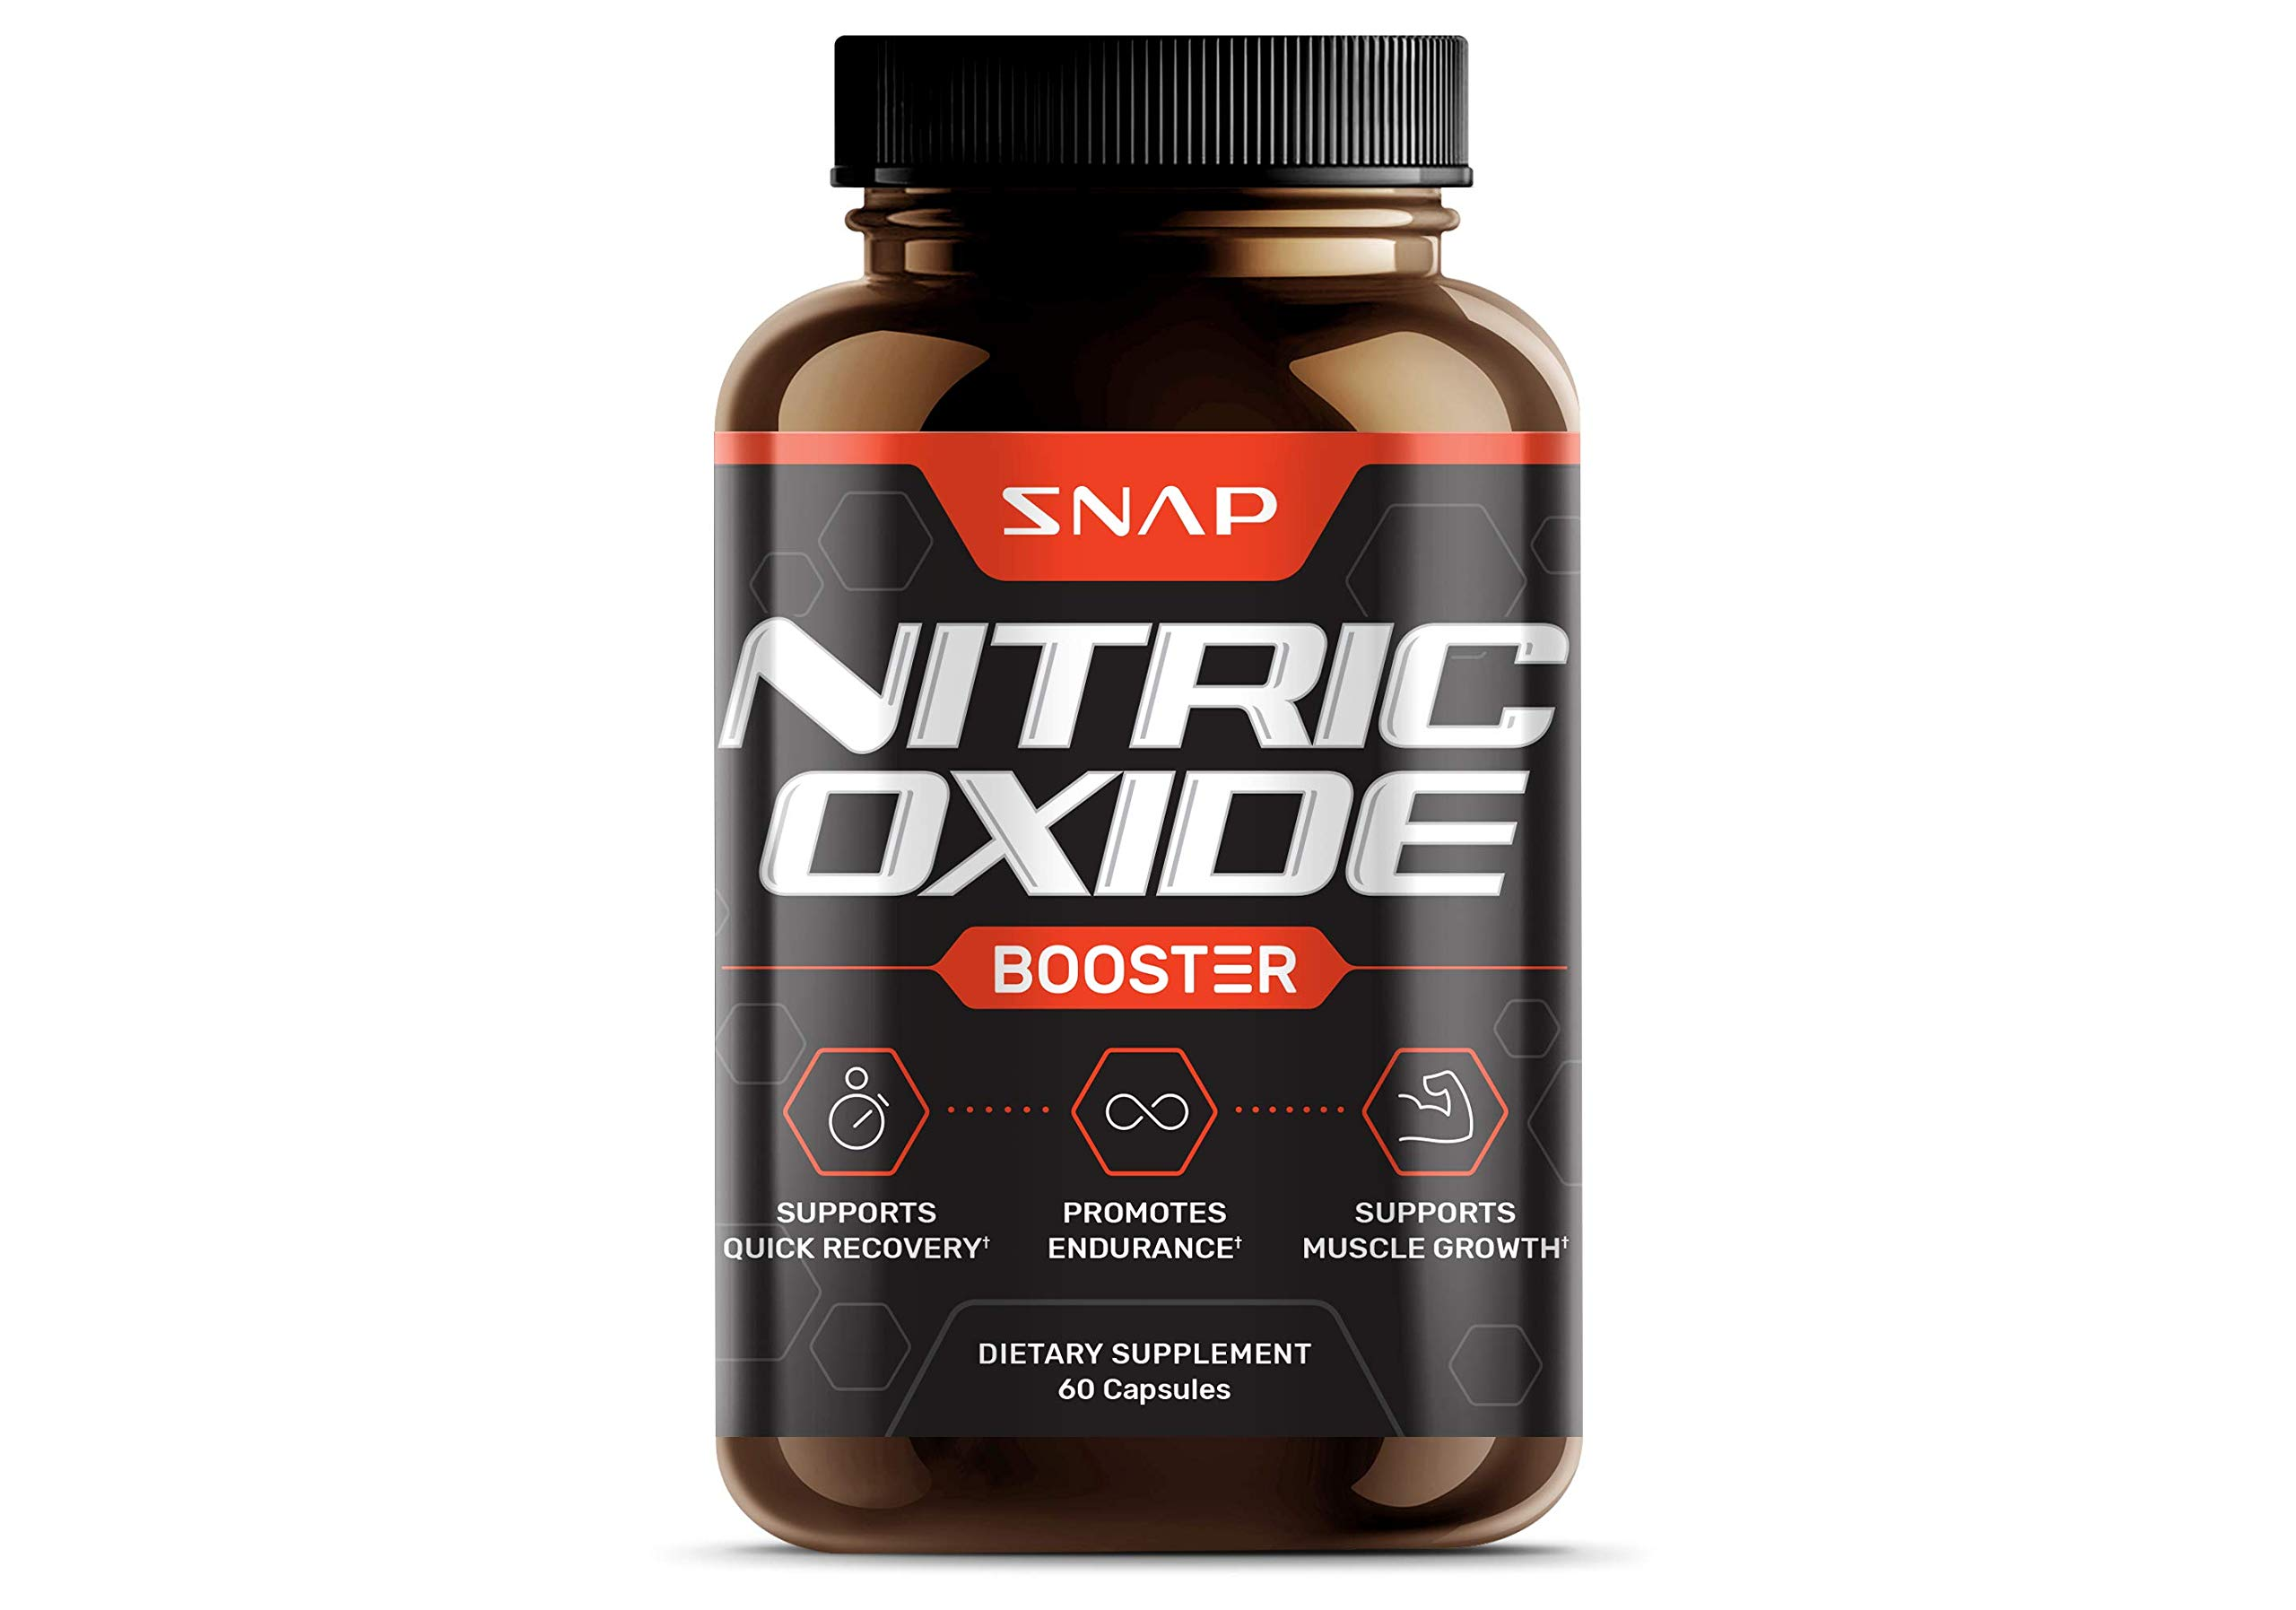 Nitric Oxide Supplements - L Arginine, L Citrulline 1500mg Formula - Tribulus Extract & Panax Ginseng - Muscle Builder for Strength and Endurance, Pre-Workout Supplements - 60 Capsules